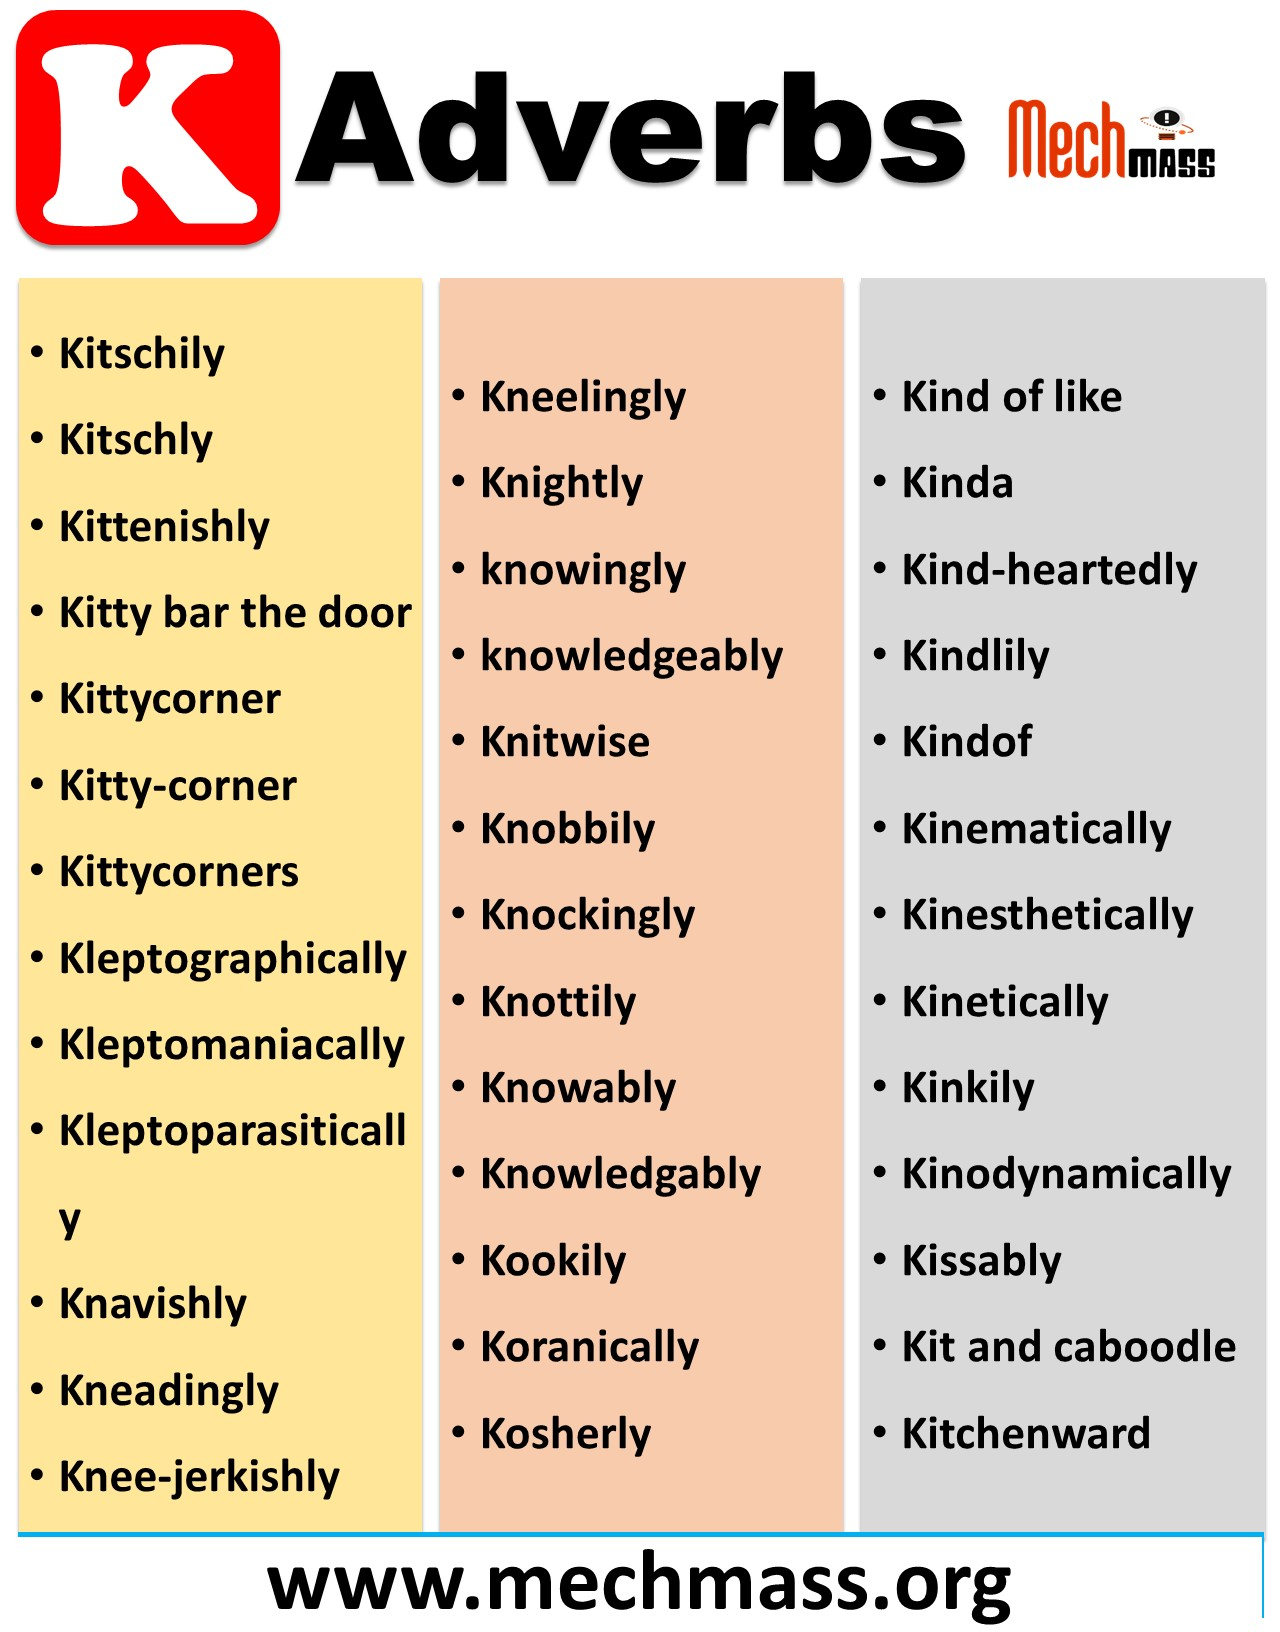 adverbs that start with k to describe a person